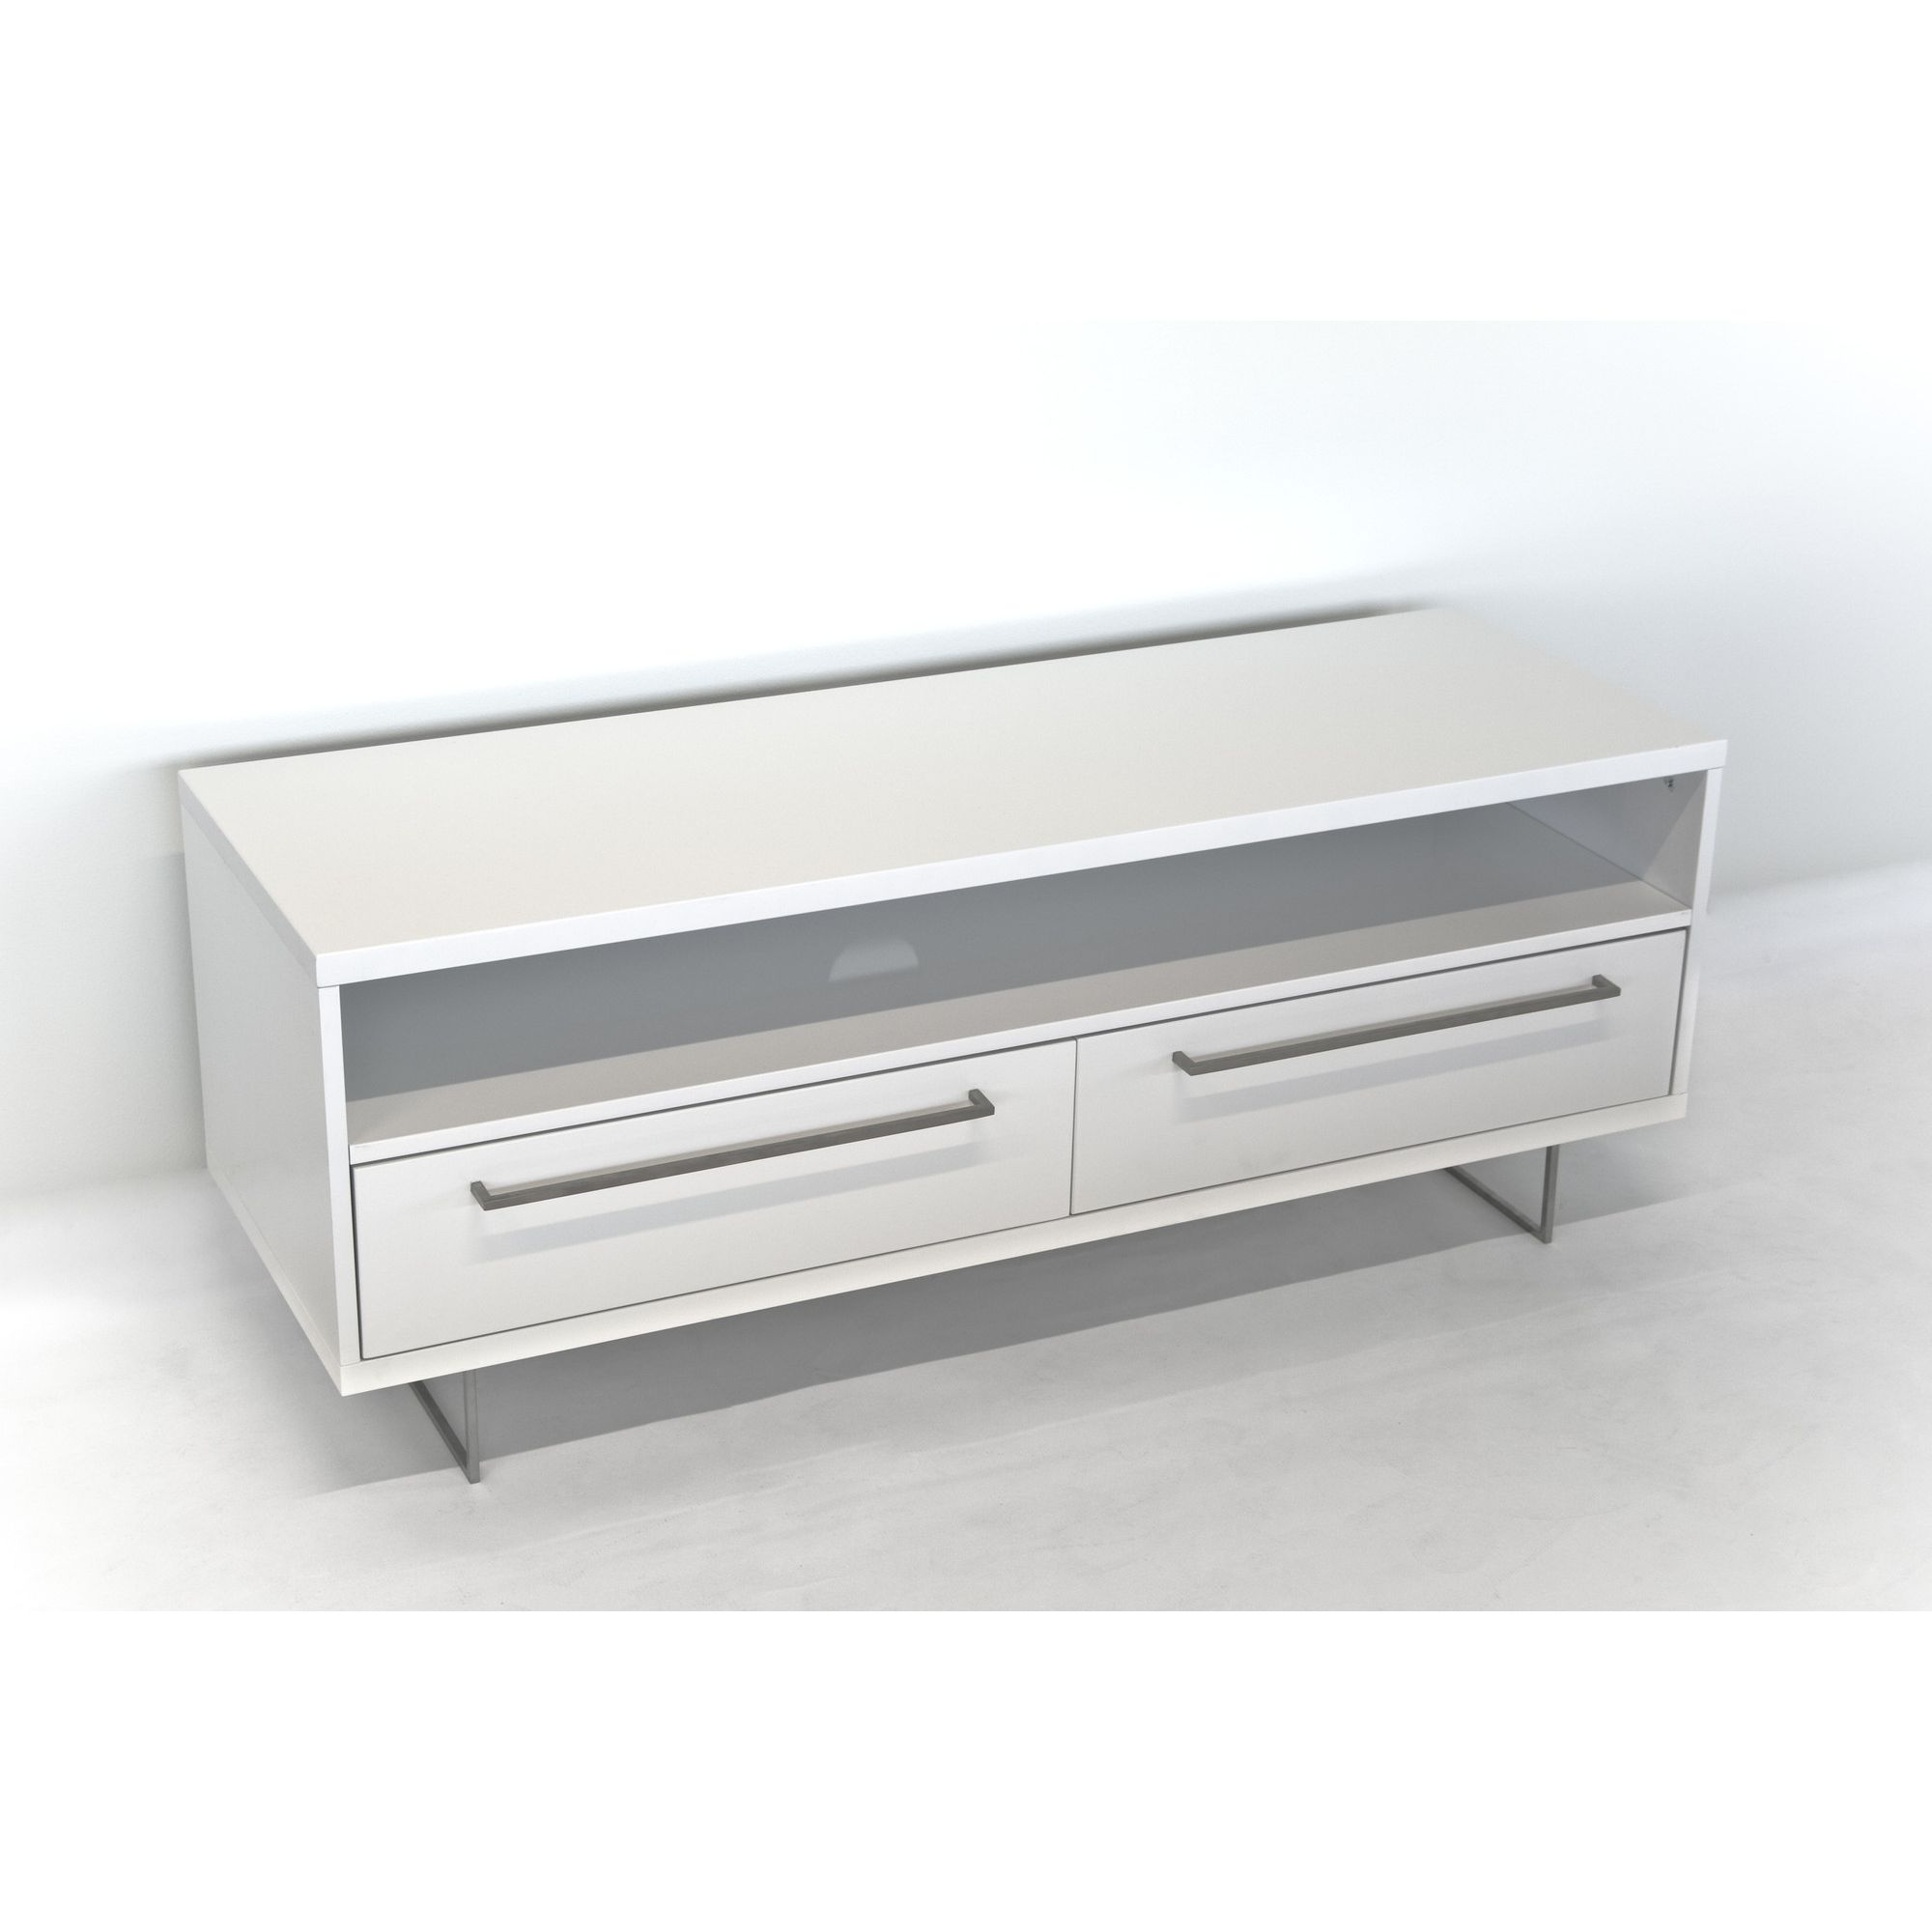 RGE Lago 2 Drawers Multi-Media TV Storage and Display Unit - Lacquer White High Gloss at Tesco Direct